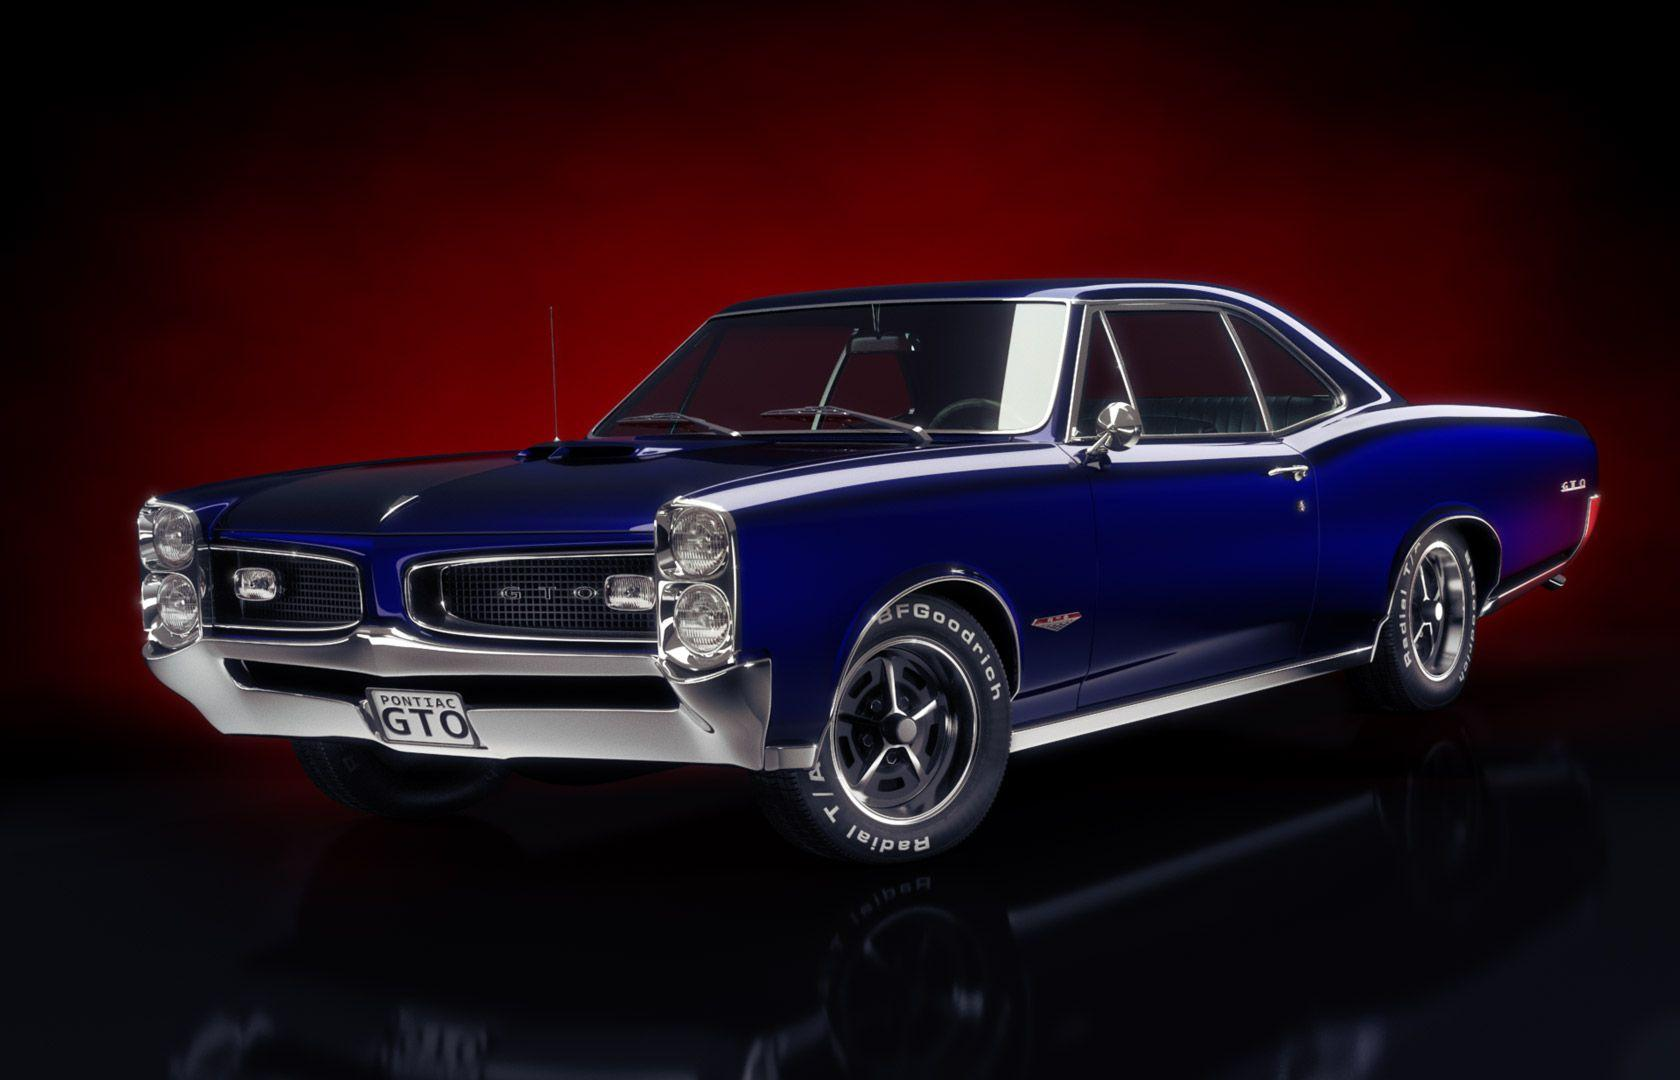 Old Classic El Camino Muscle Cars Wallpaper Pontiac Gto Wallpapers Wallpaper Cave